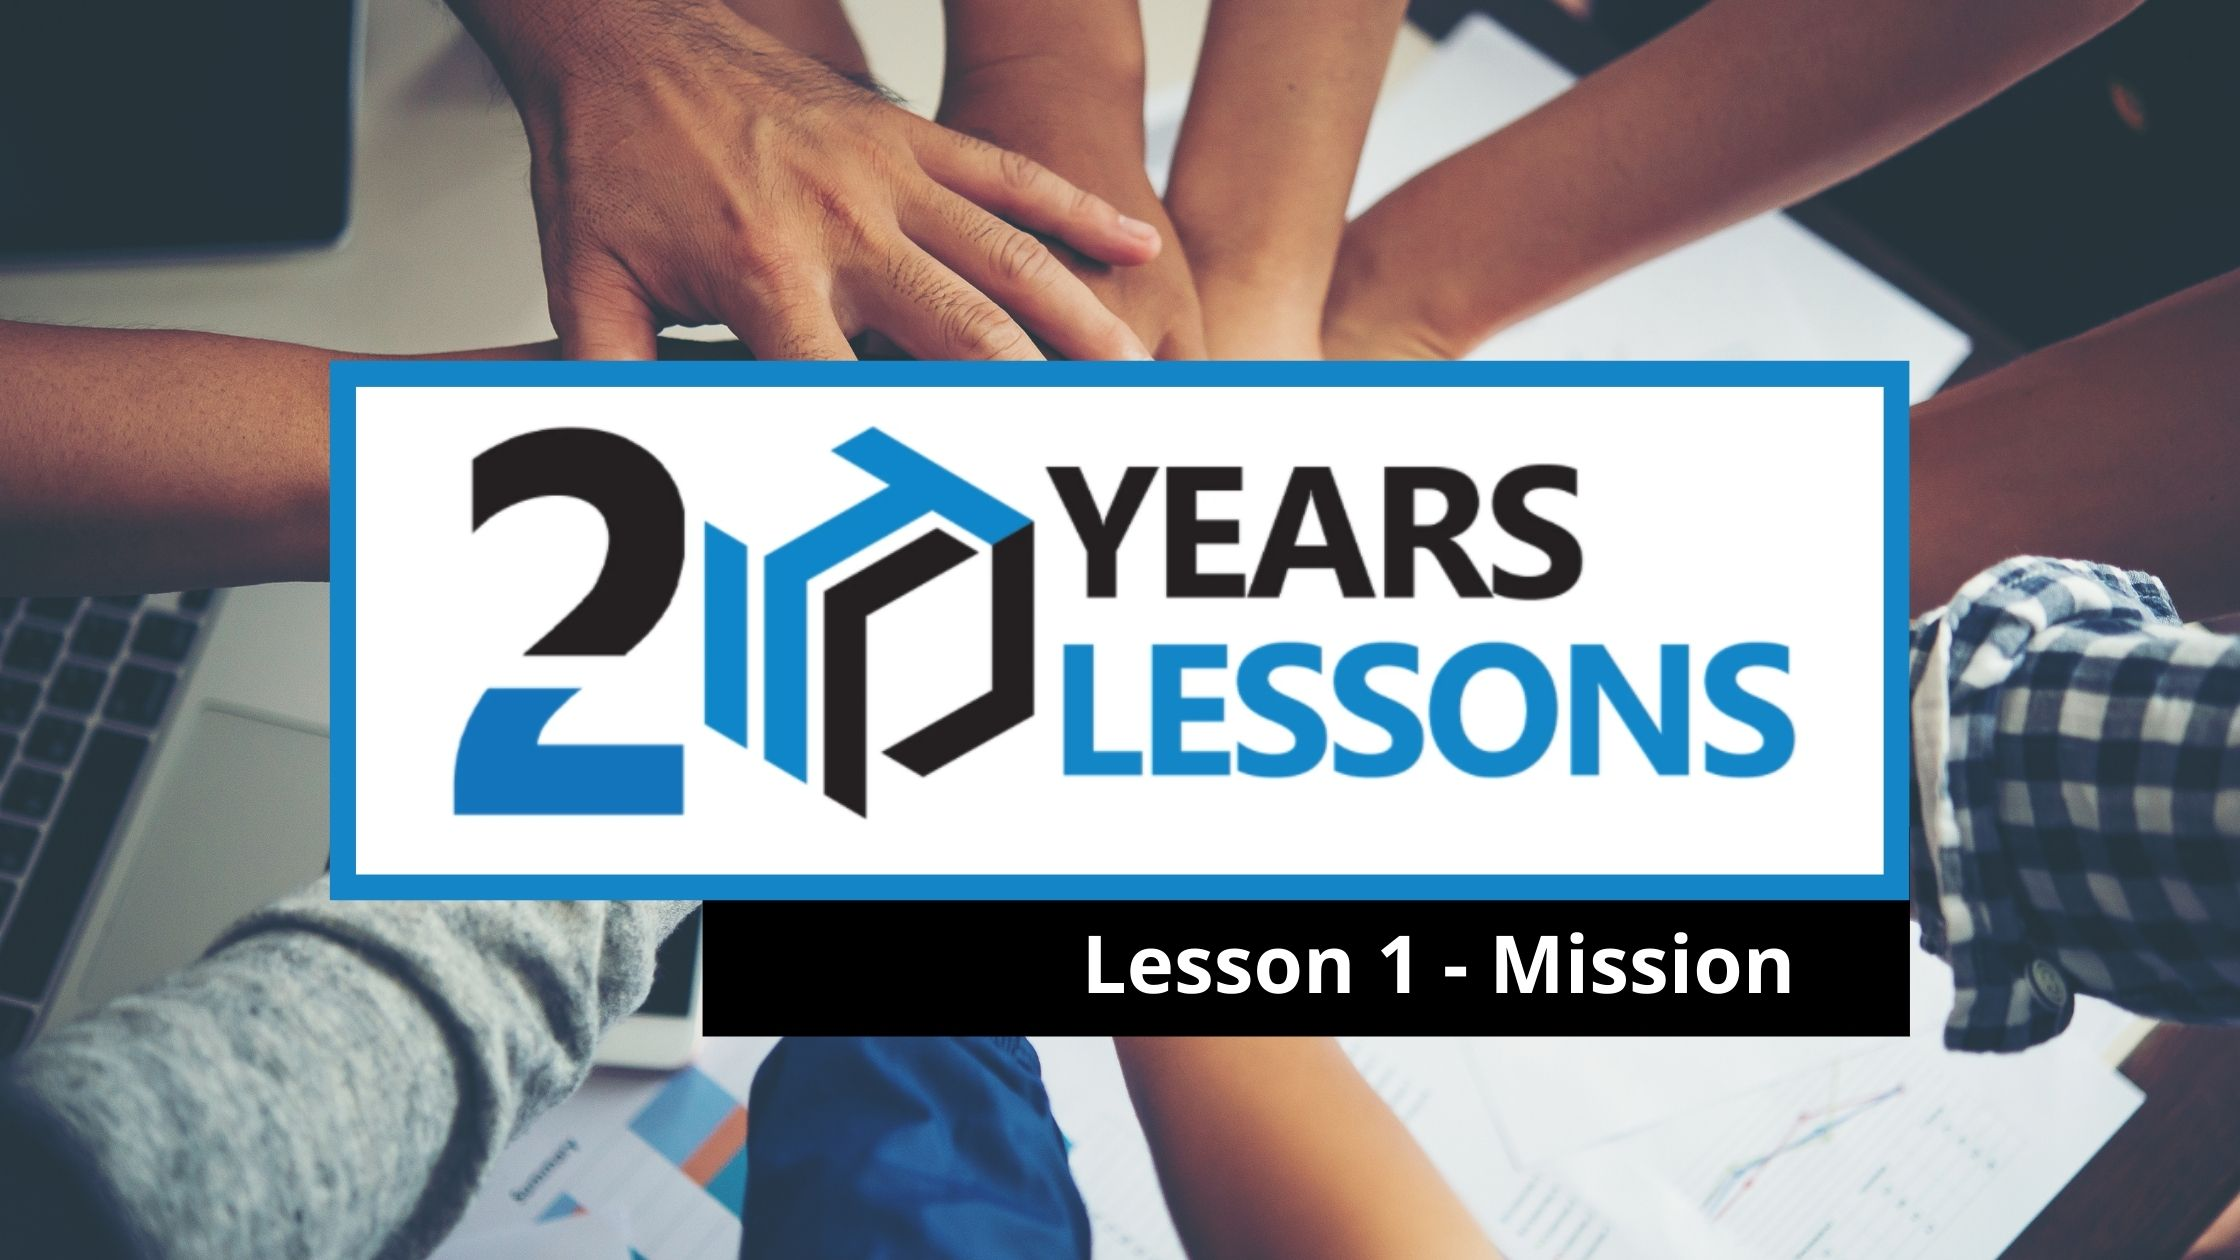 Lesson 1 - Mission   20 Years, 20 Lessons